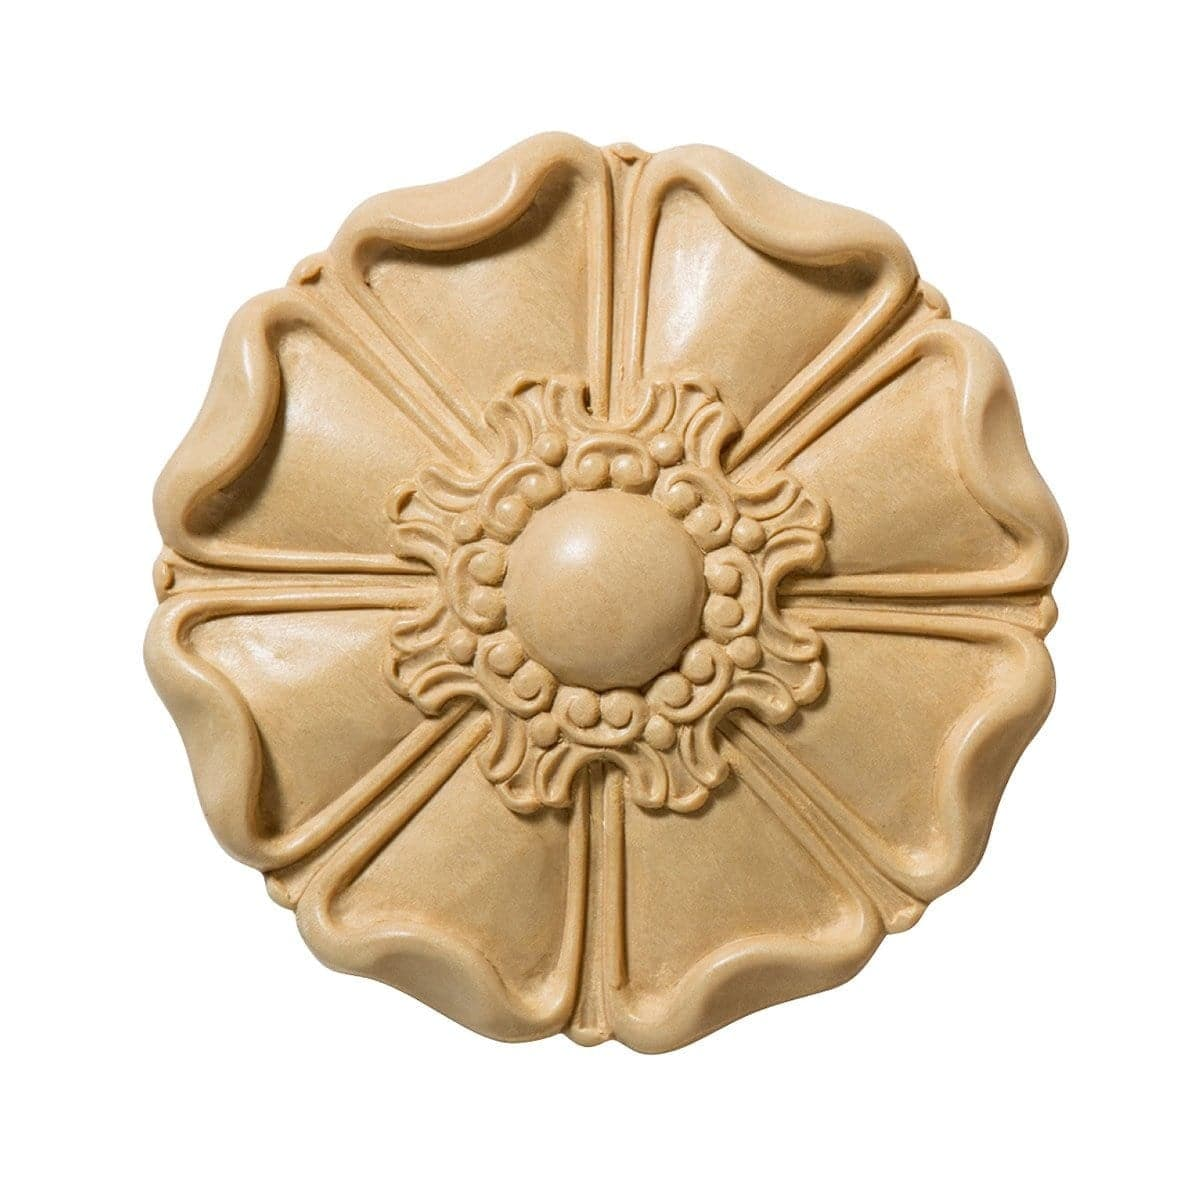 Medium Petal Rosette, 5w x 5h x 1d, 1 pair, Lindenwood